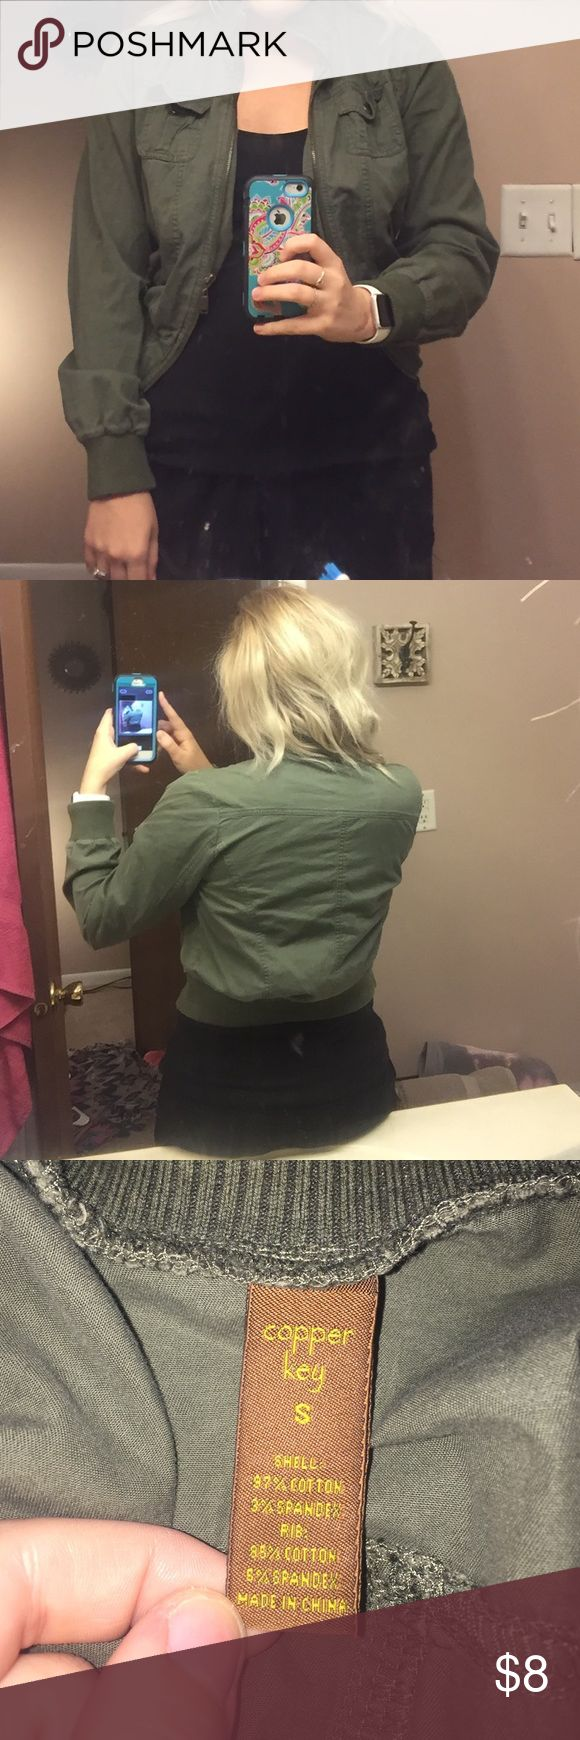 Army Green Utility Jacket! Size small Copper Key utility jacket! I loved this jacket for so long, but hardly wore it because it was shoved to the back of my closet! It looks great with basically anything! Copper Key Jackets & Coats Utility Jackets